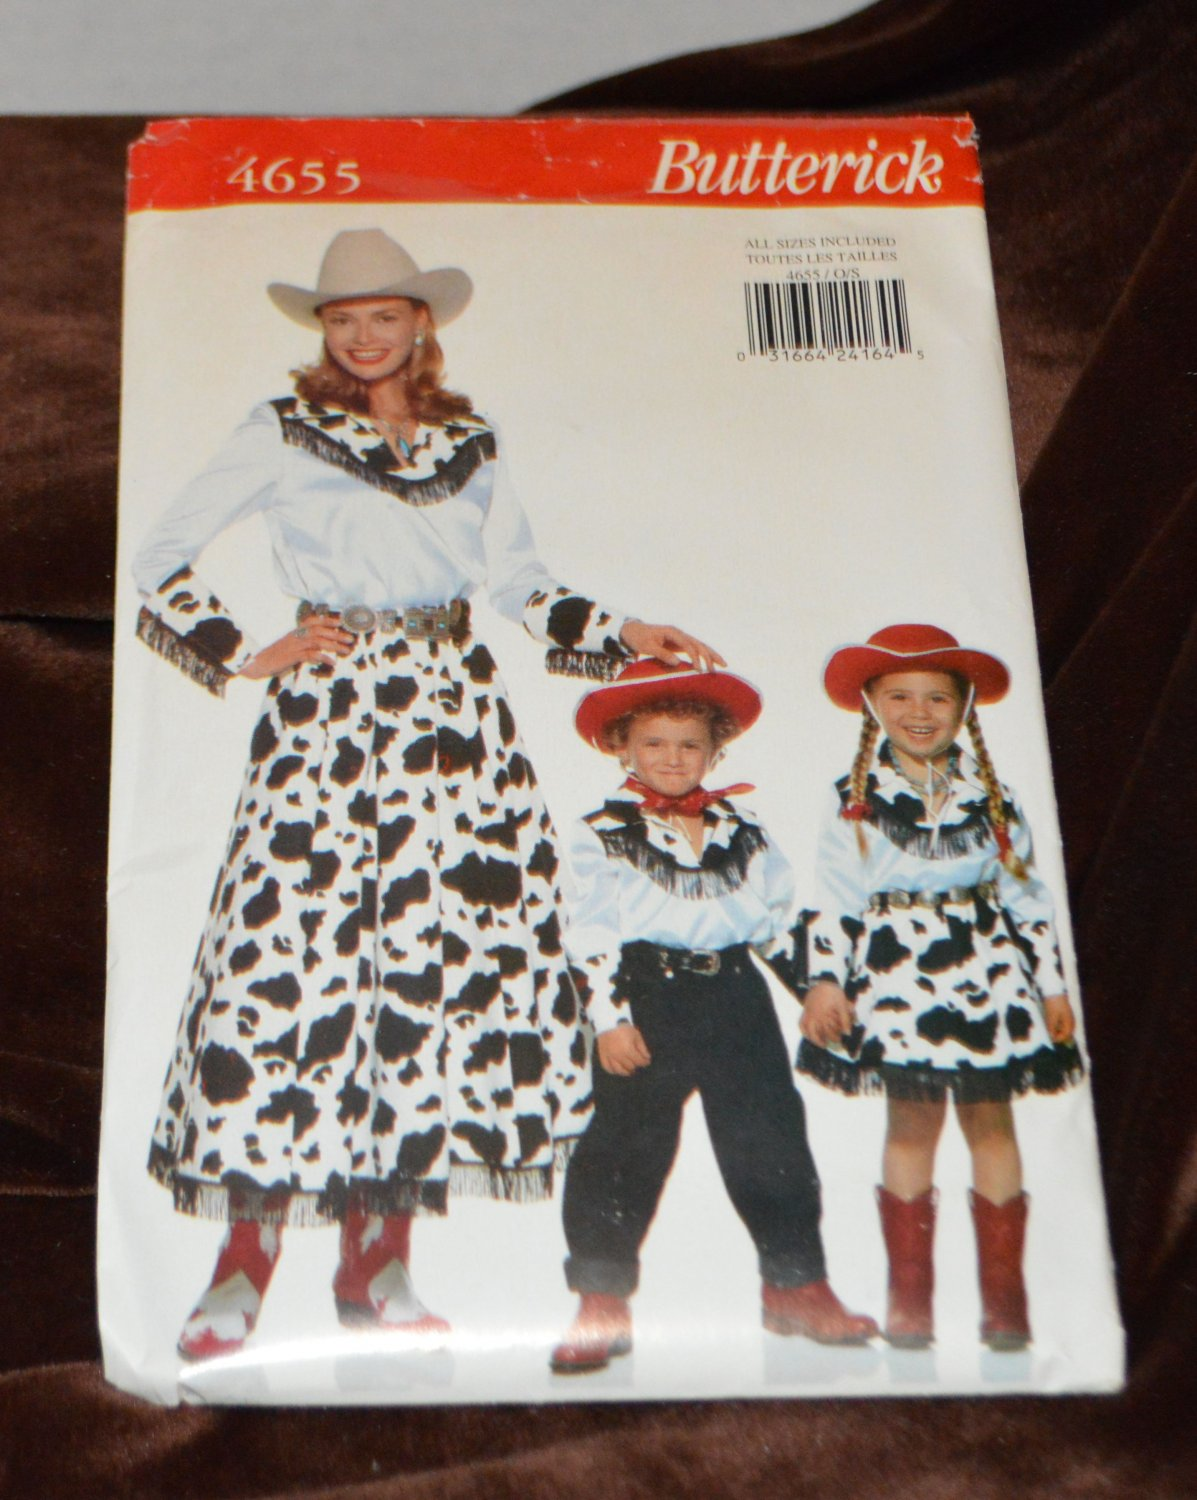 Butterick Sewing Pattern 4655 - Country Styling for the Whole Family All Sizes